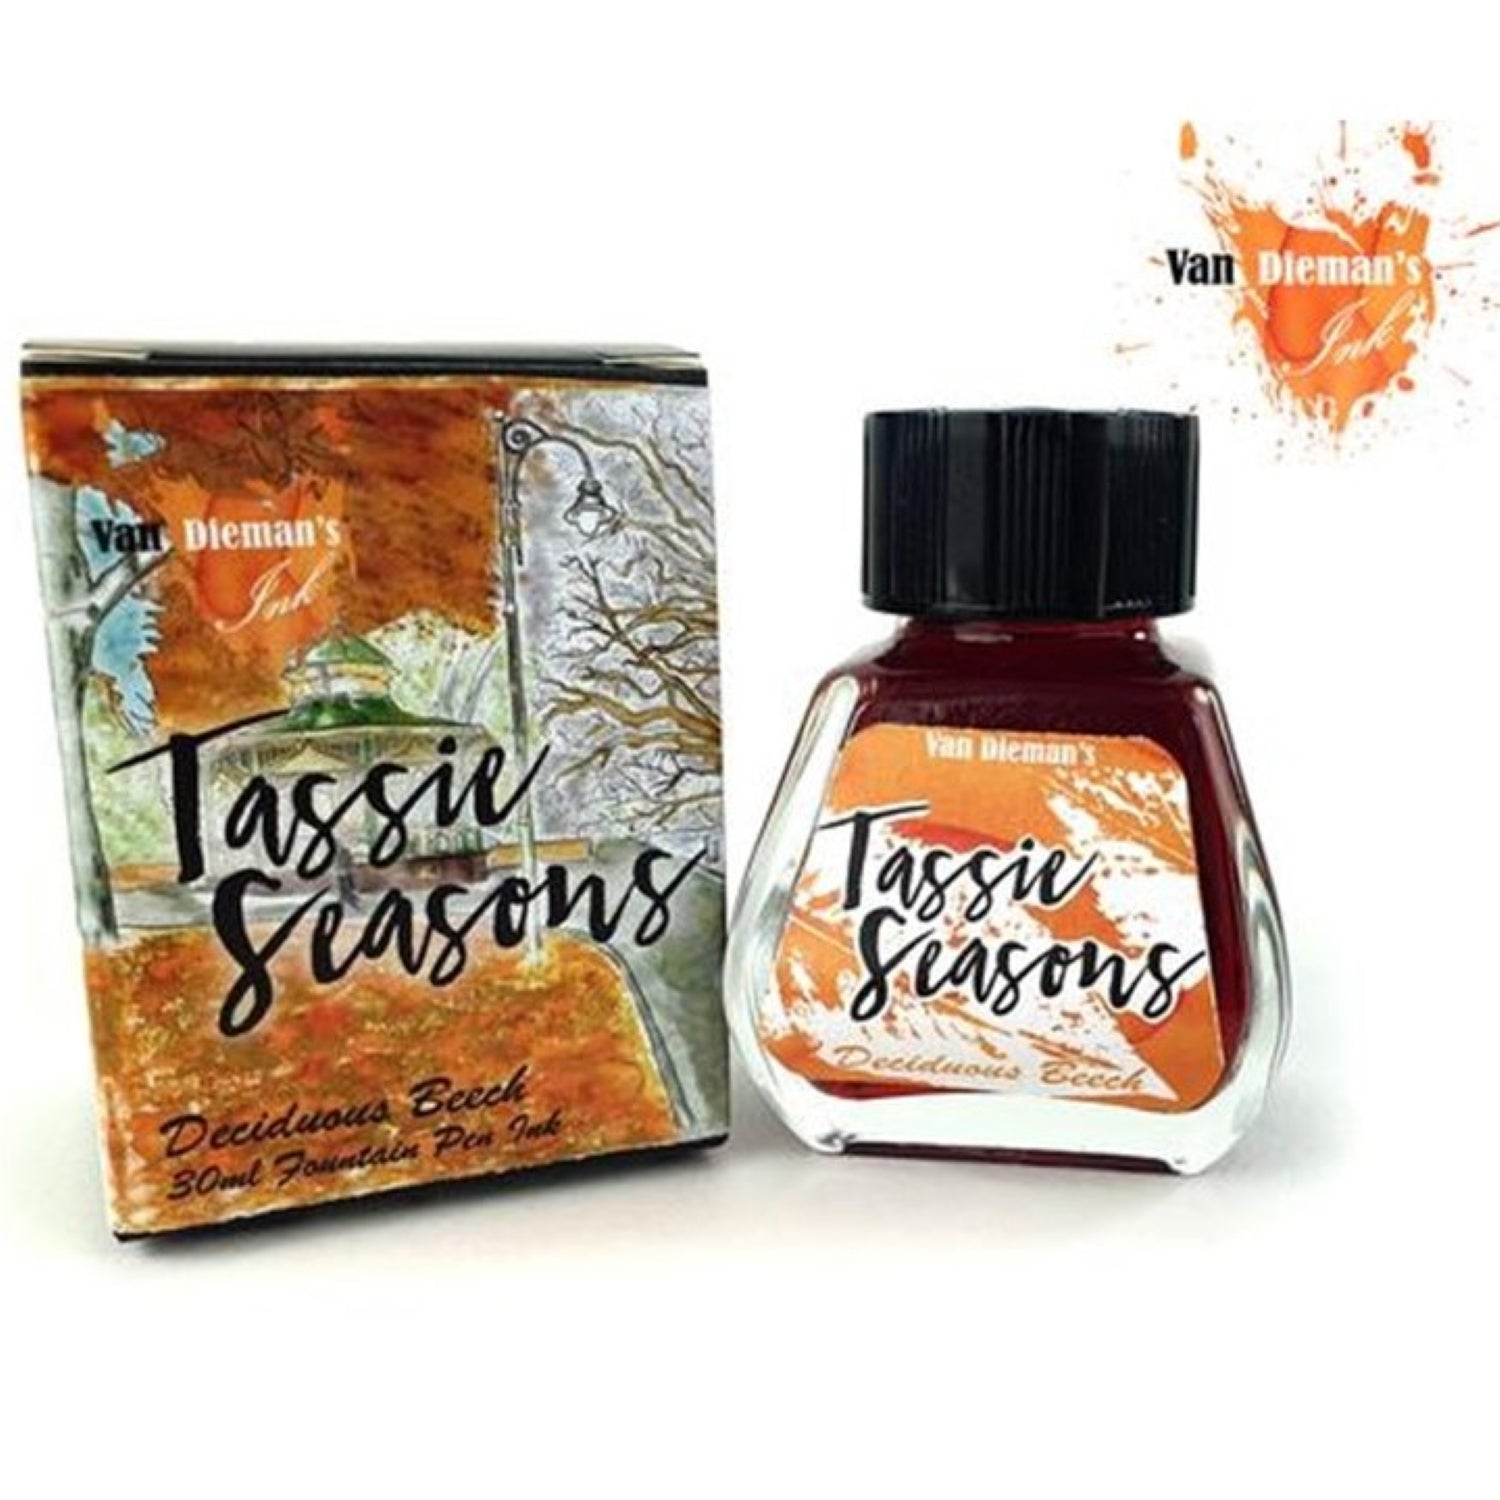 Van Diemans Tassie Seasons (Autumn) Deciduous Beech Ink 30ml